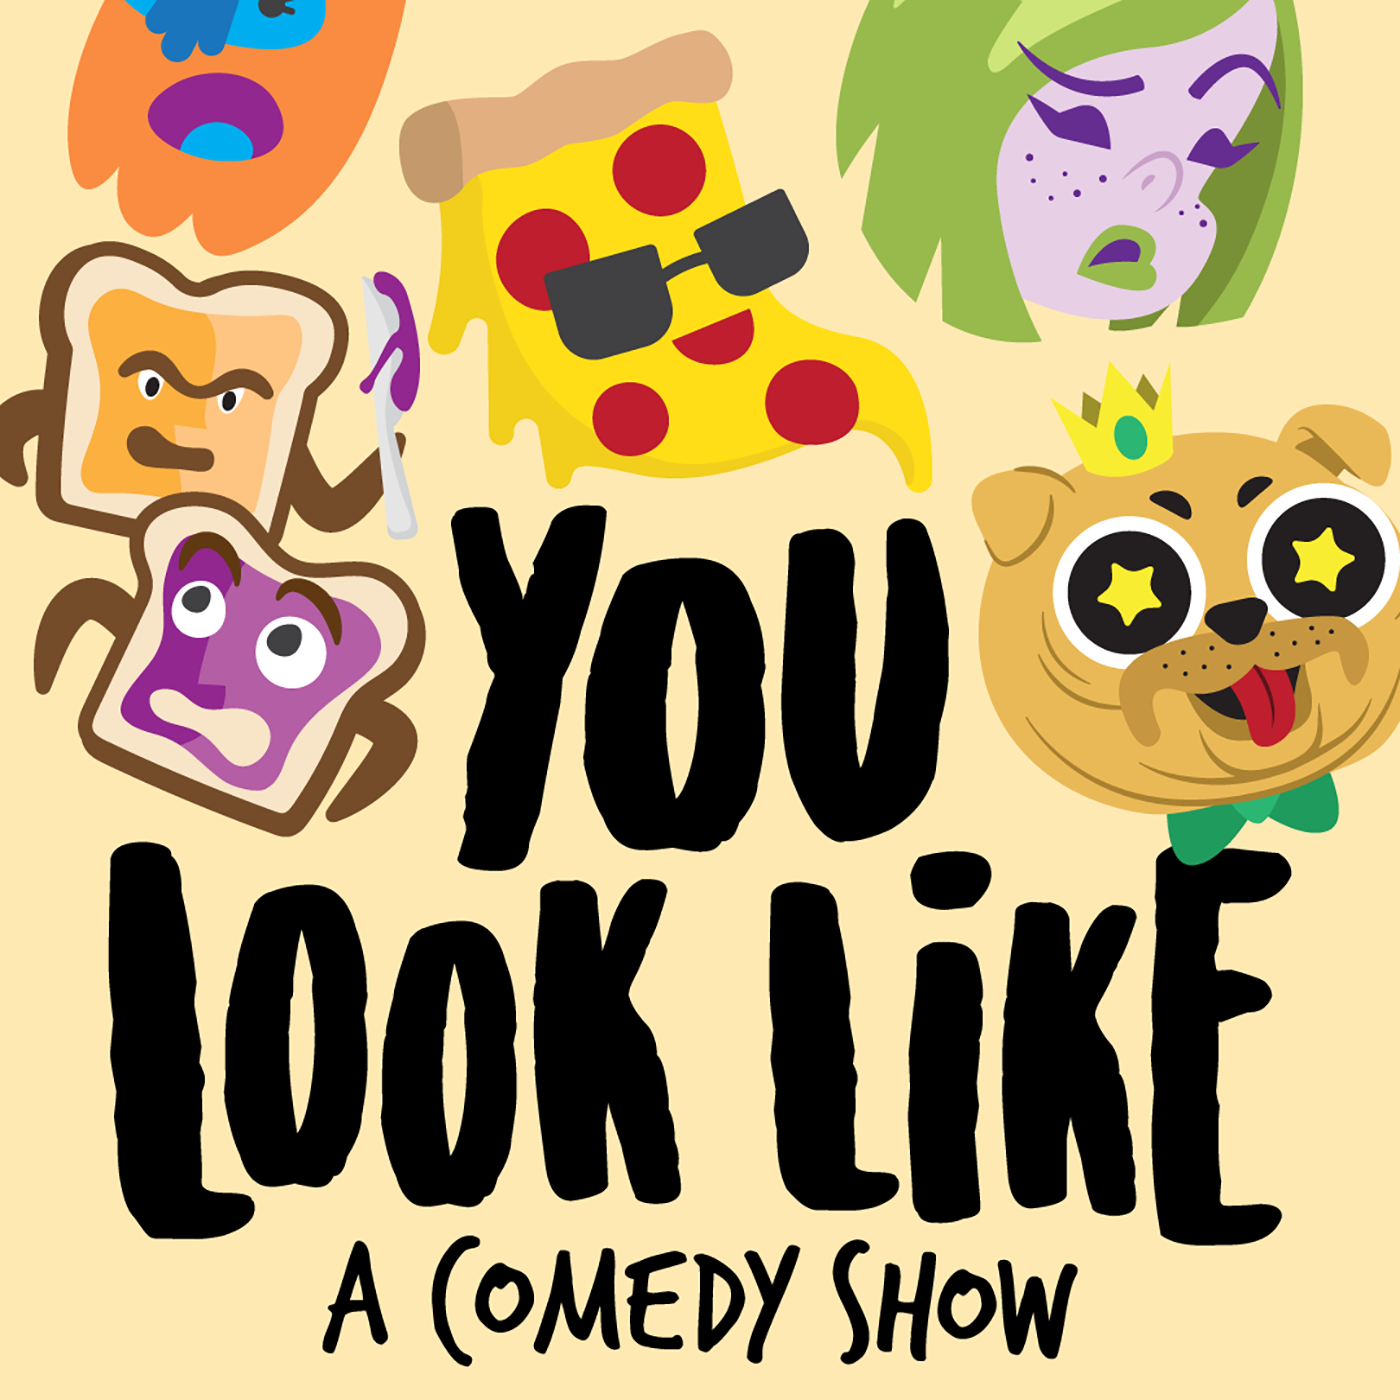 You Look Like A Comedy Show